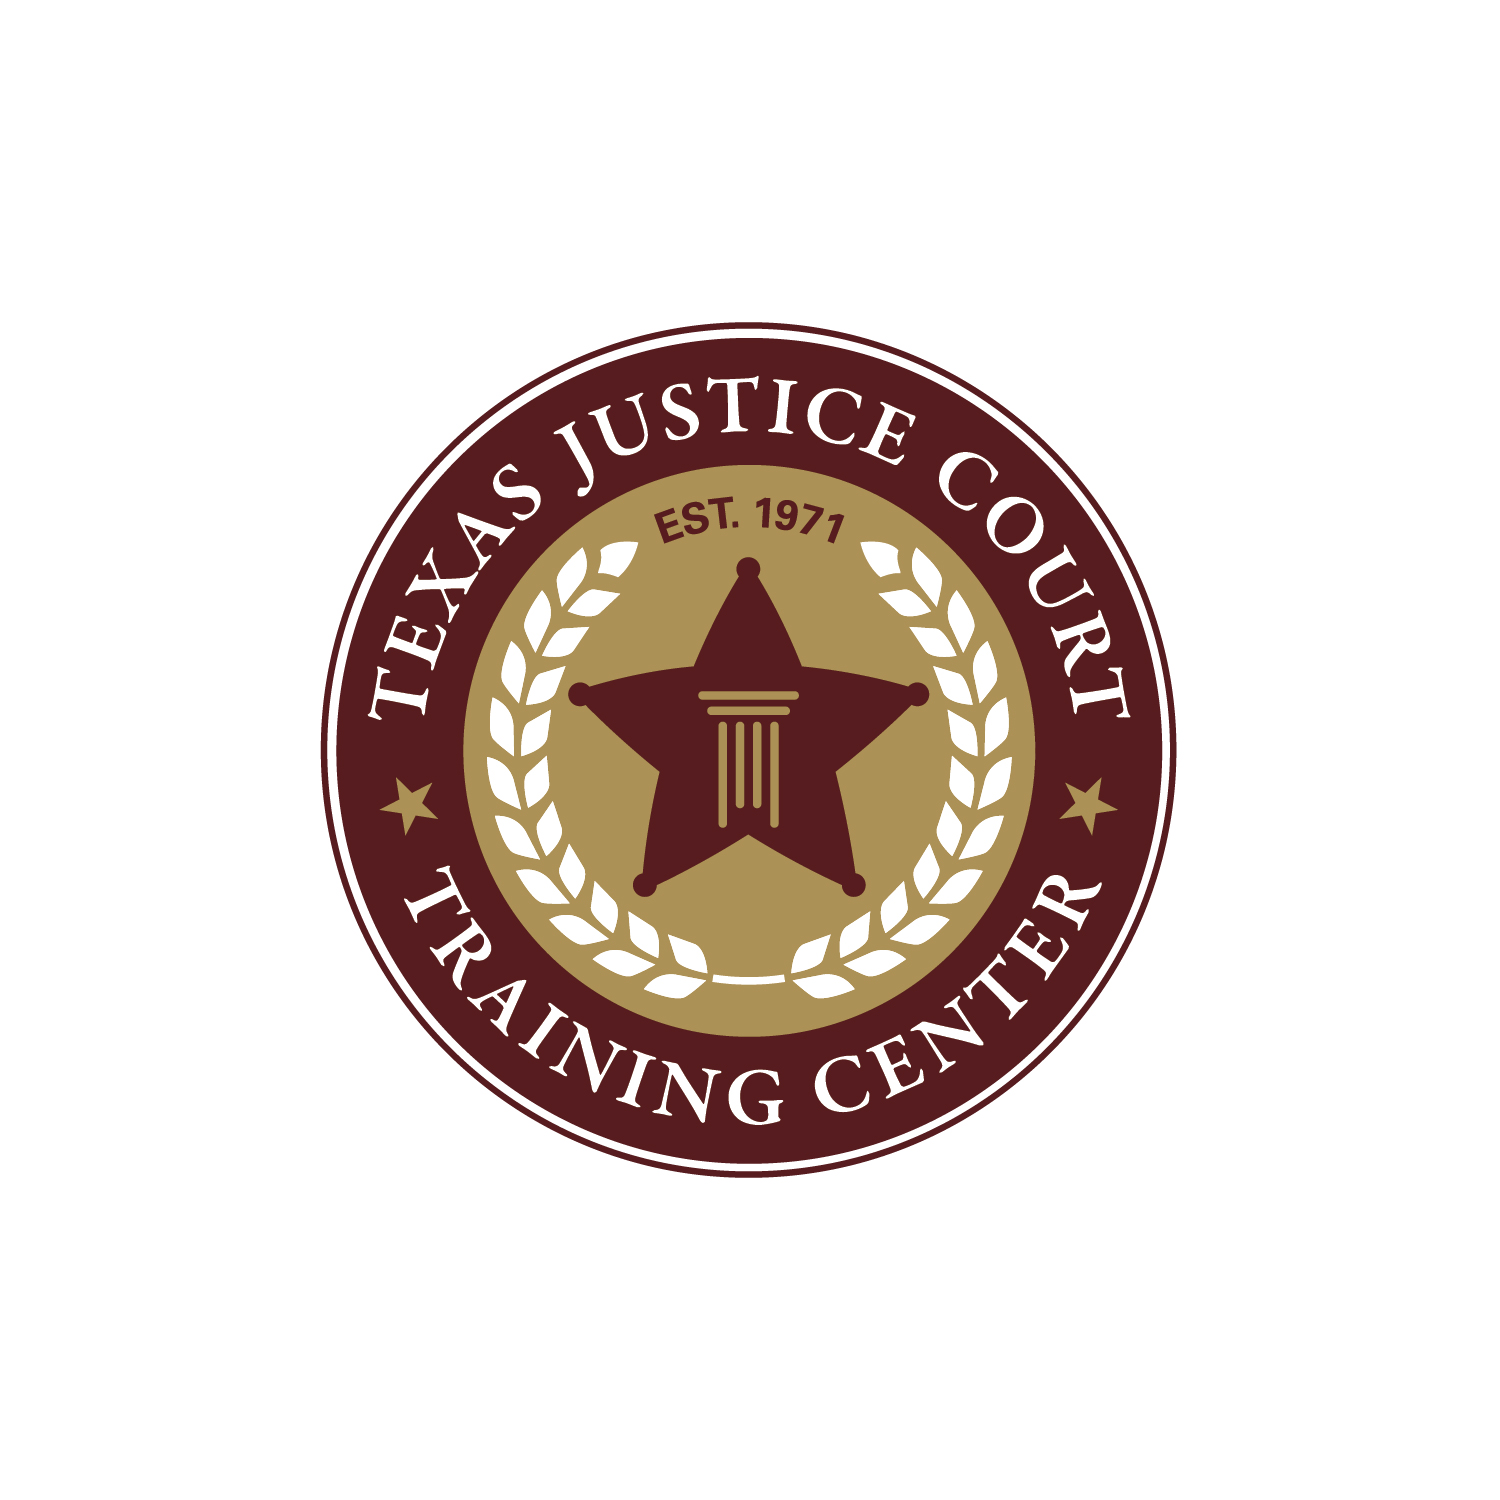 17-041 Texas Justice Court Training Center FINAL_2 color-252264471.jpg